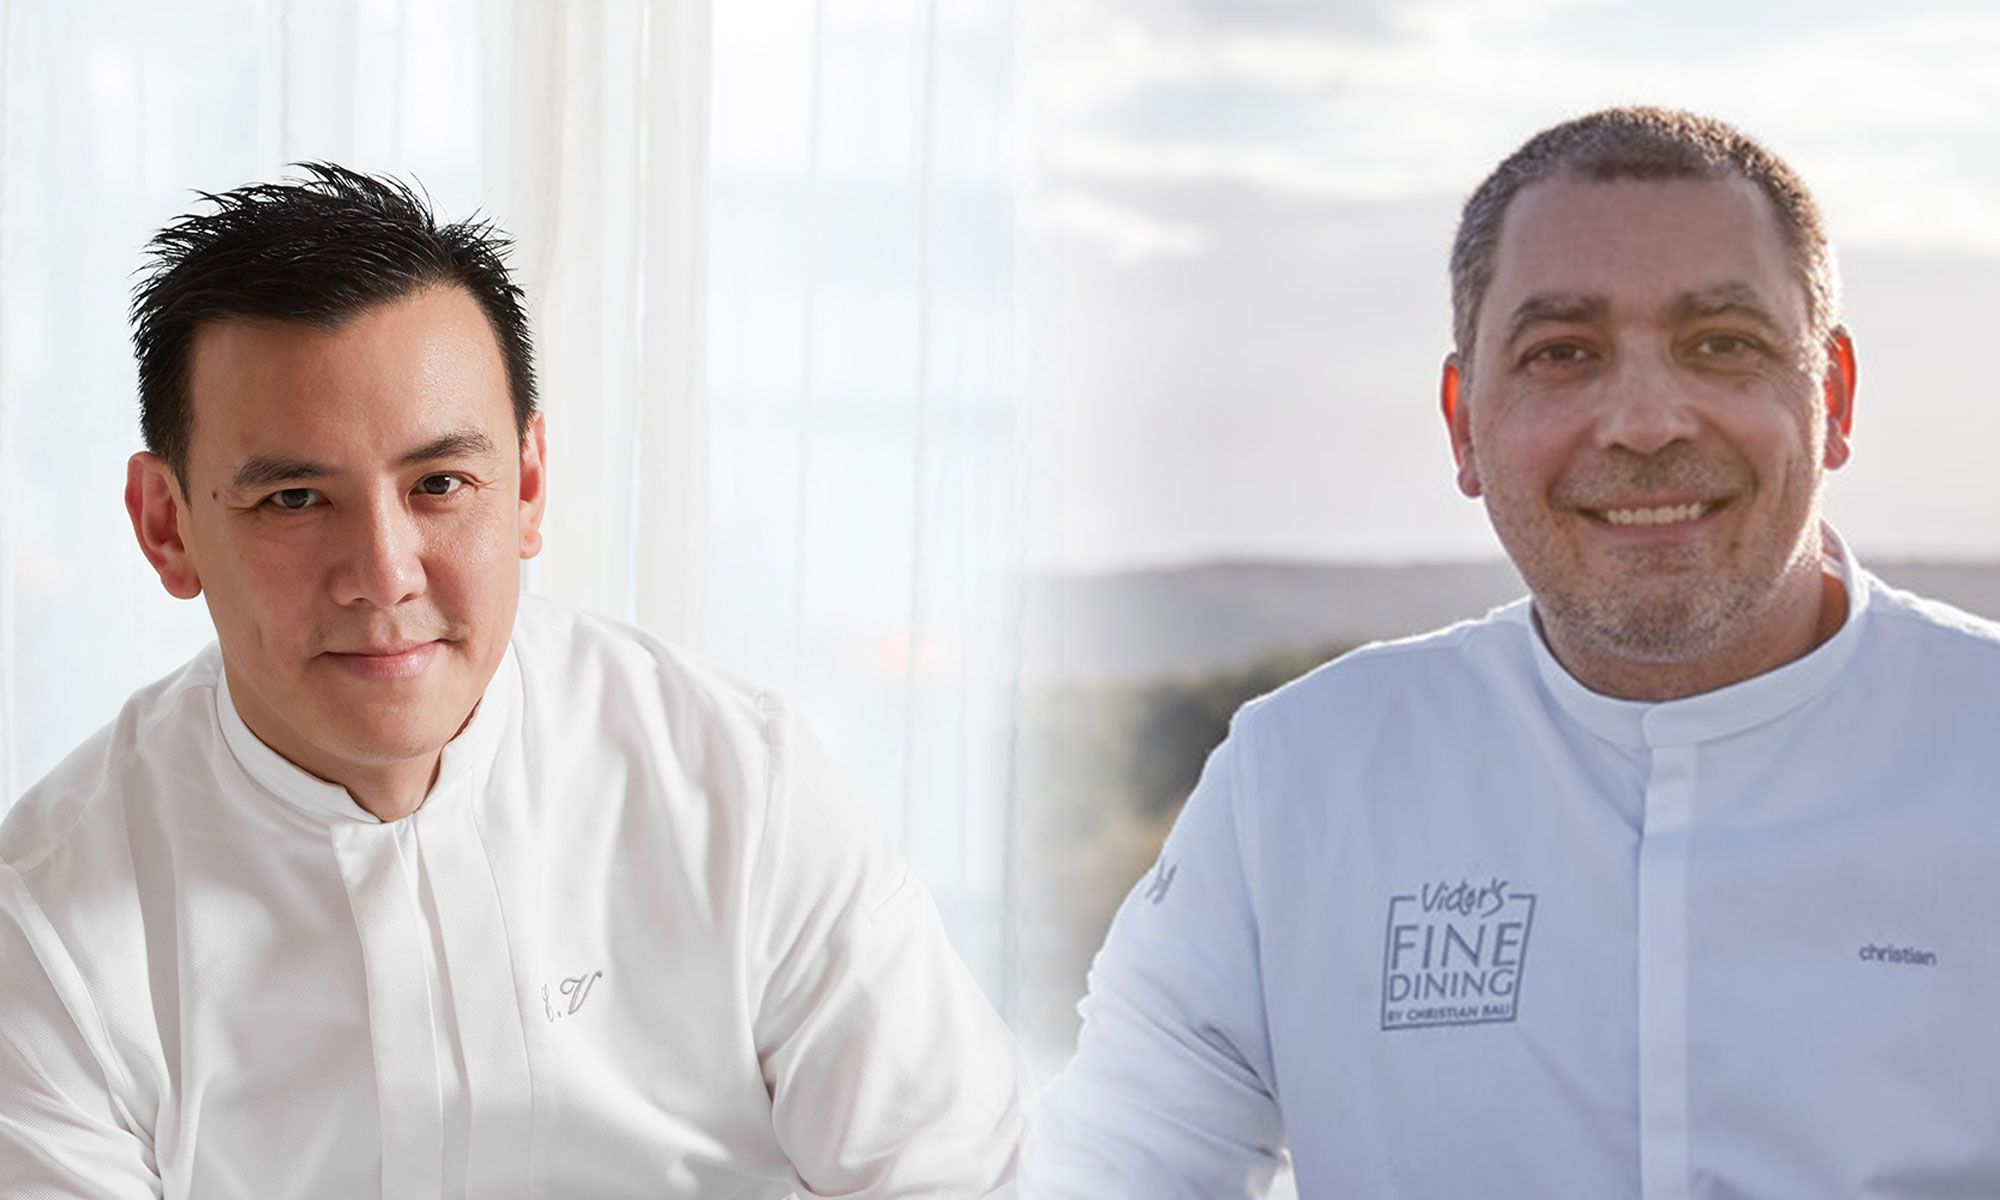 Le Pan To Welcome Guest Chef Christian Bau In January 2019